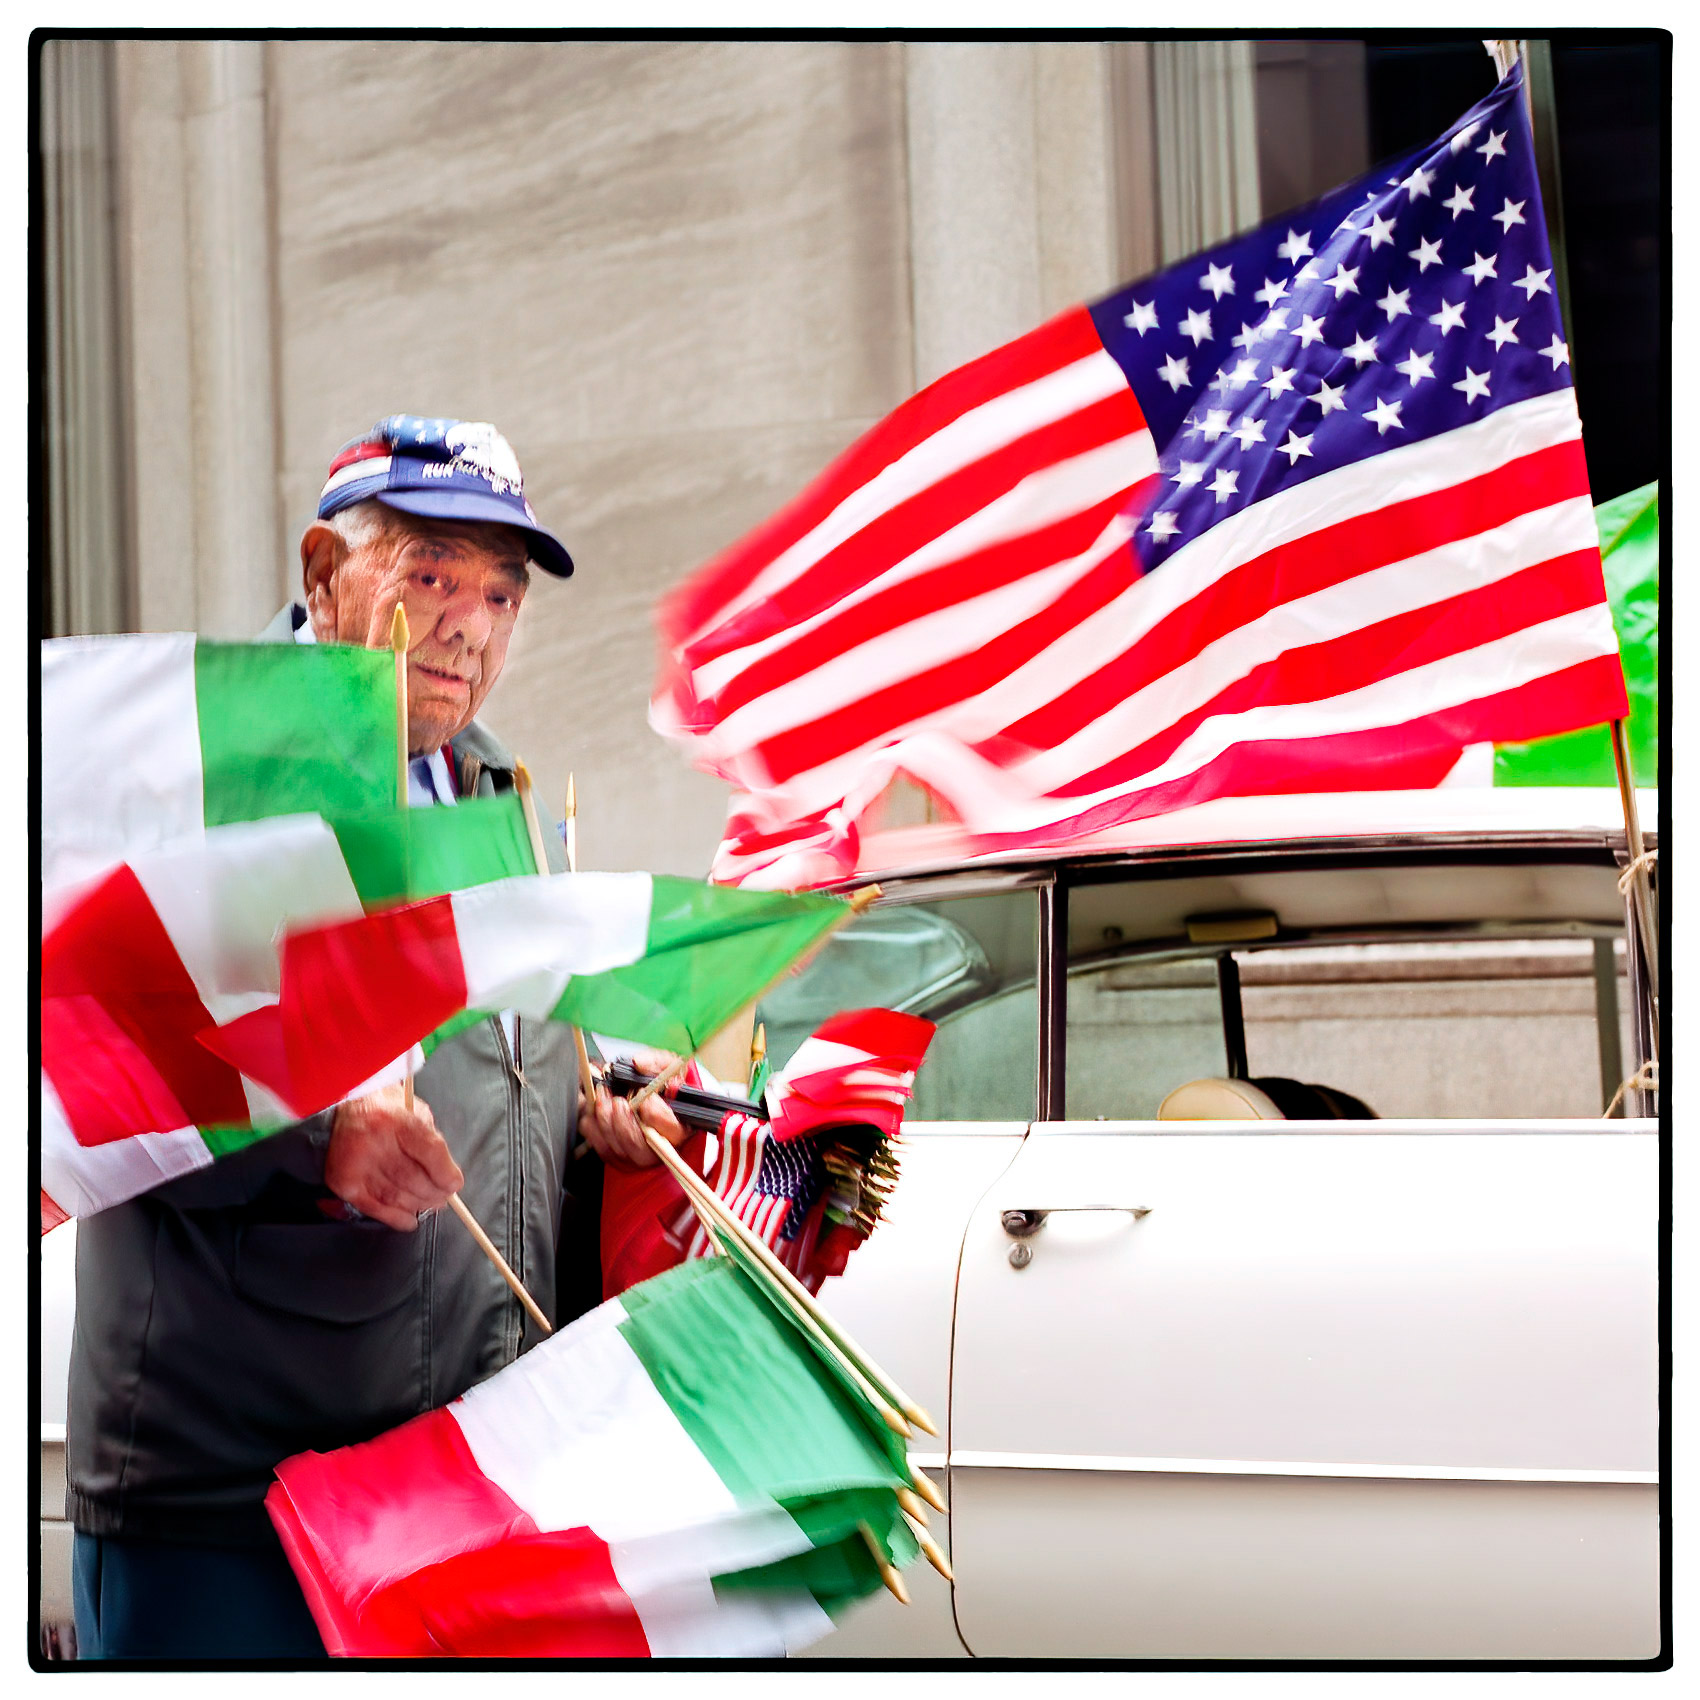 an-old-man-selling-flags-on-the-streets-during-the-new-york-thanksgiving-parade